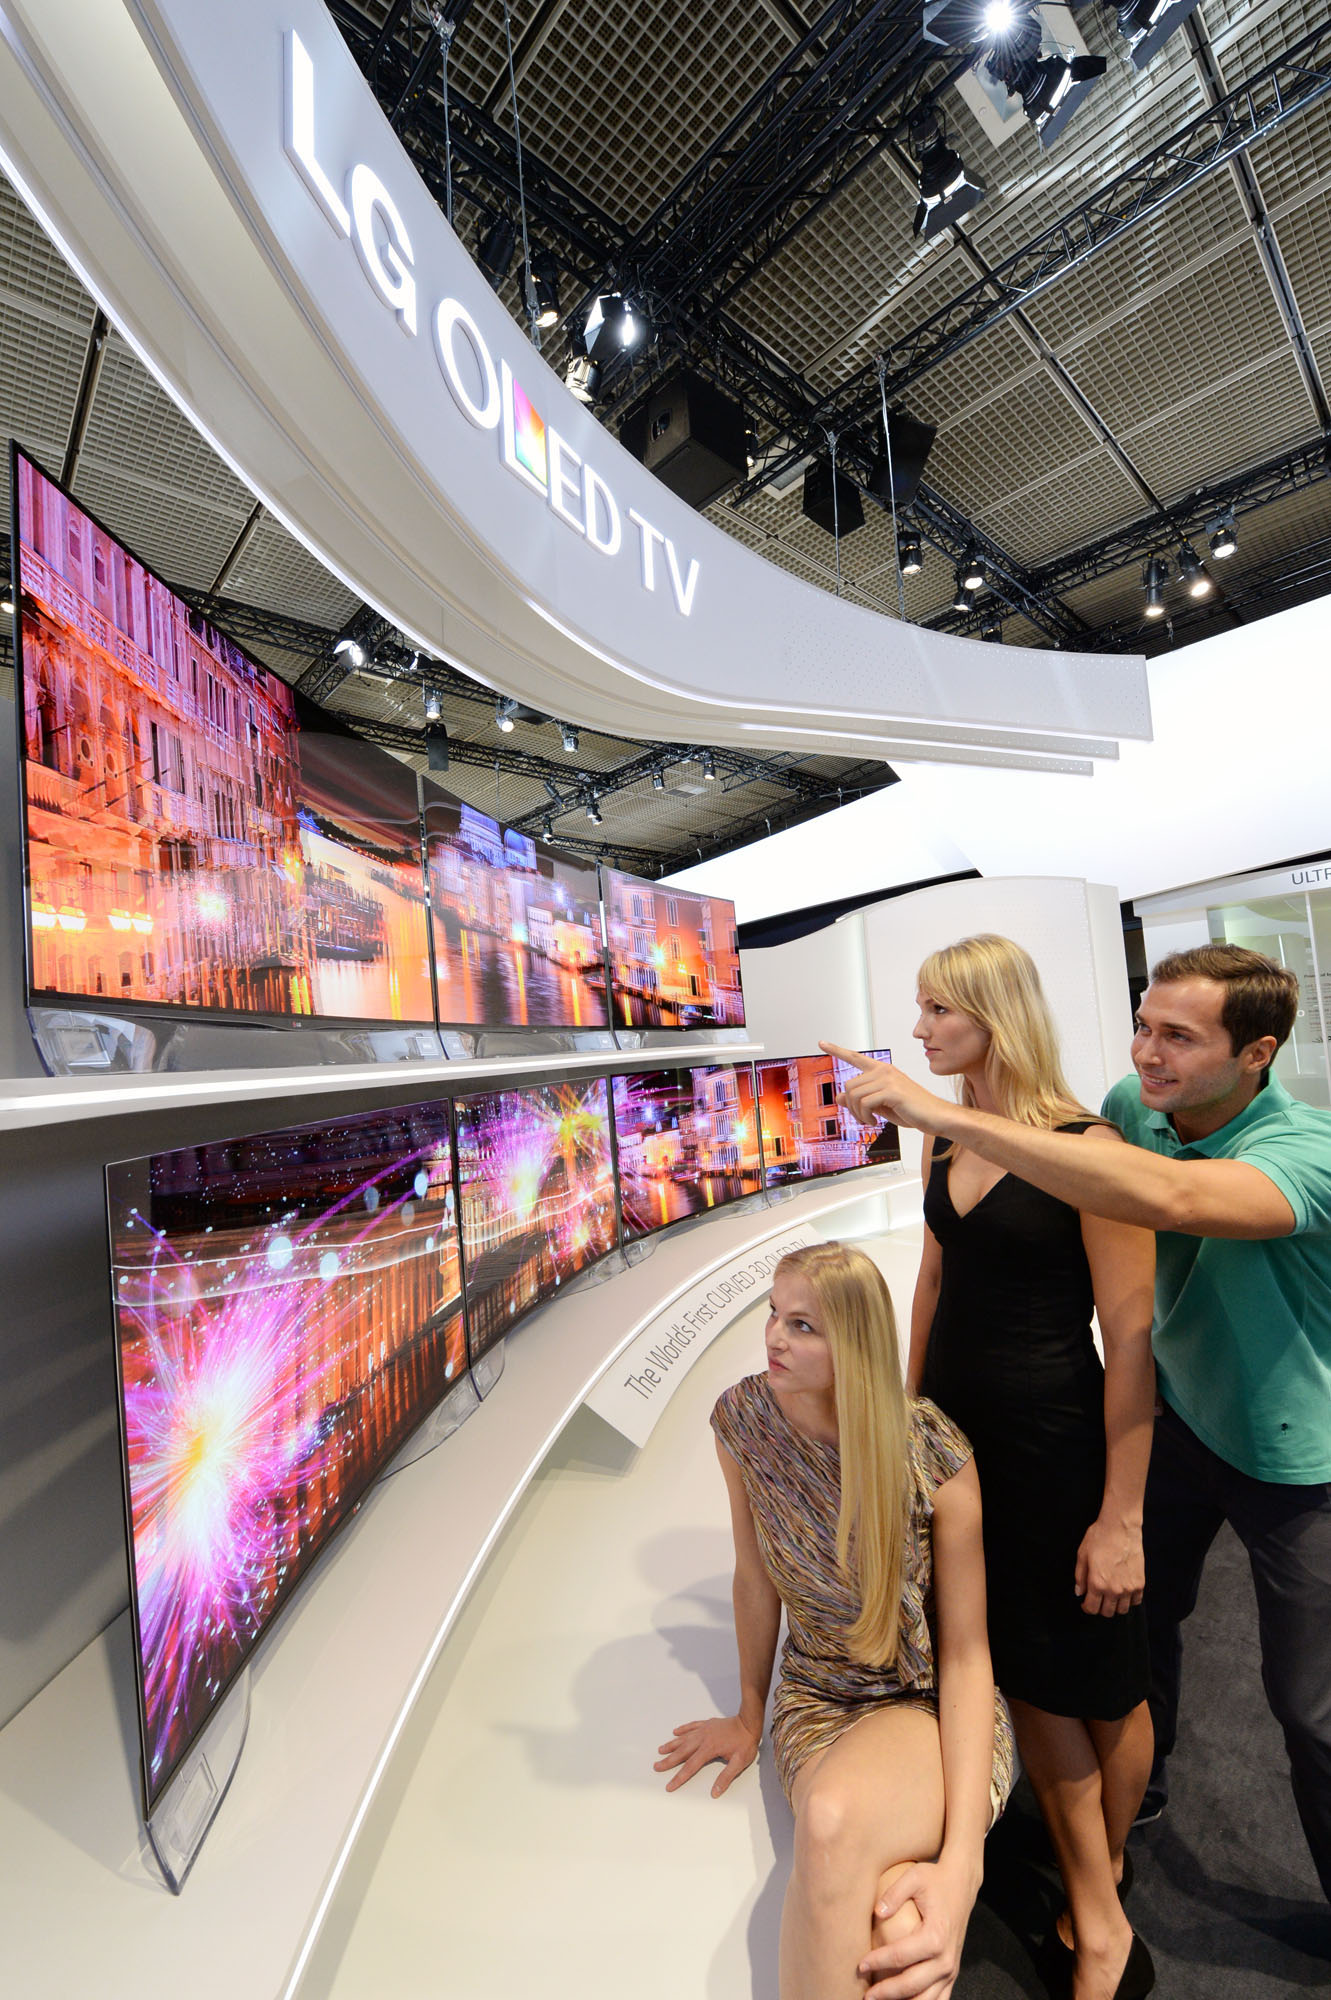 Three visitors view two rows of LG's CURVED OLED TVs on show at IFA 2013